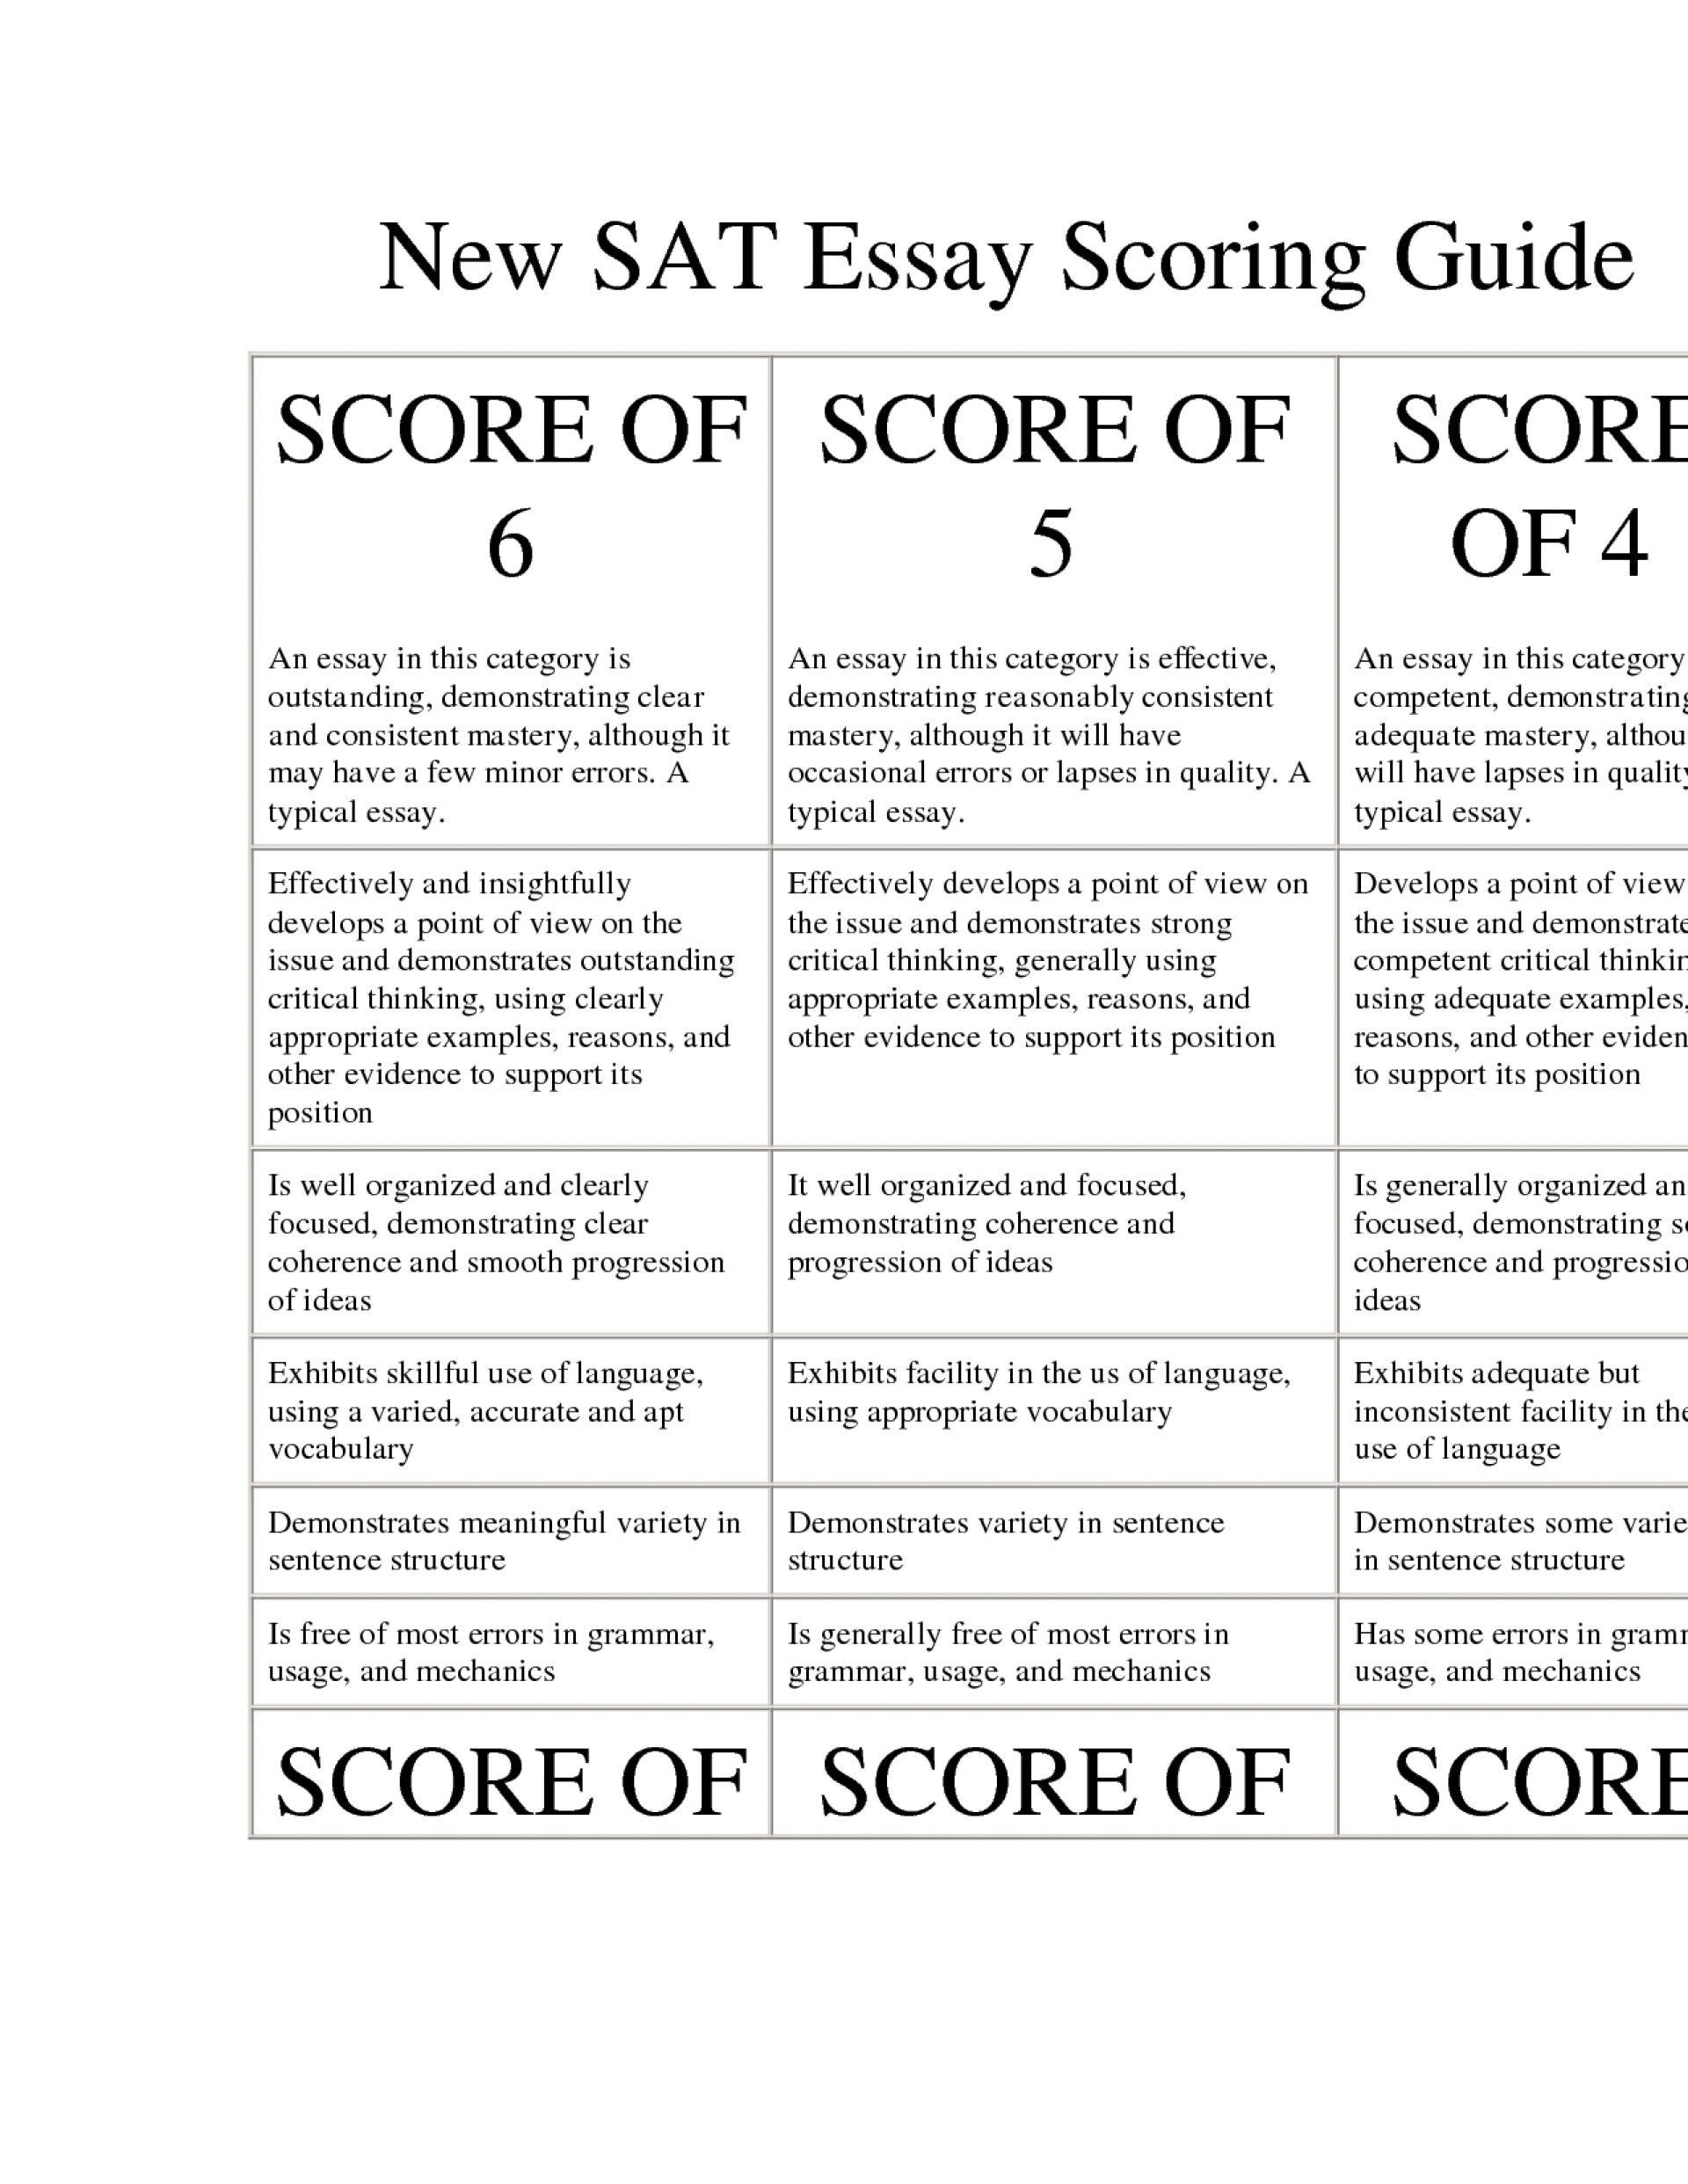 010 Essay Score Sat Goal Blockety Co Writing Percentiles Quotes Quotesgram Is There An On The L Examples Sample Tipsmat Range Prompts Time Limit Example Wondrous Tips For Persuasive Techniques Strategy 1920